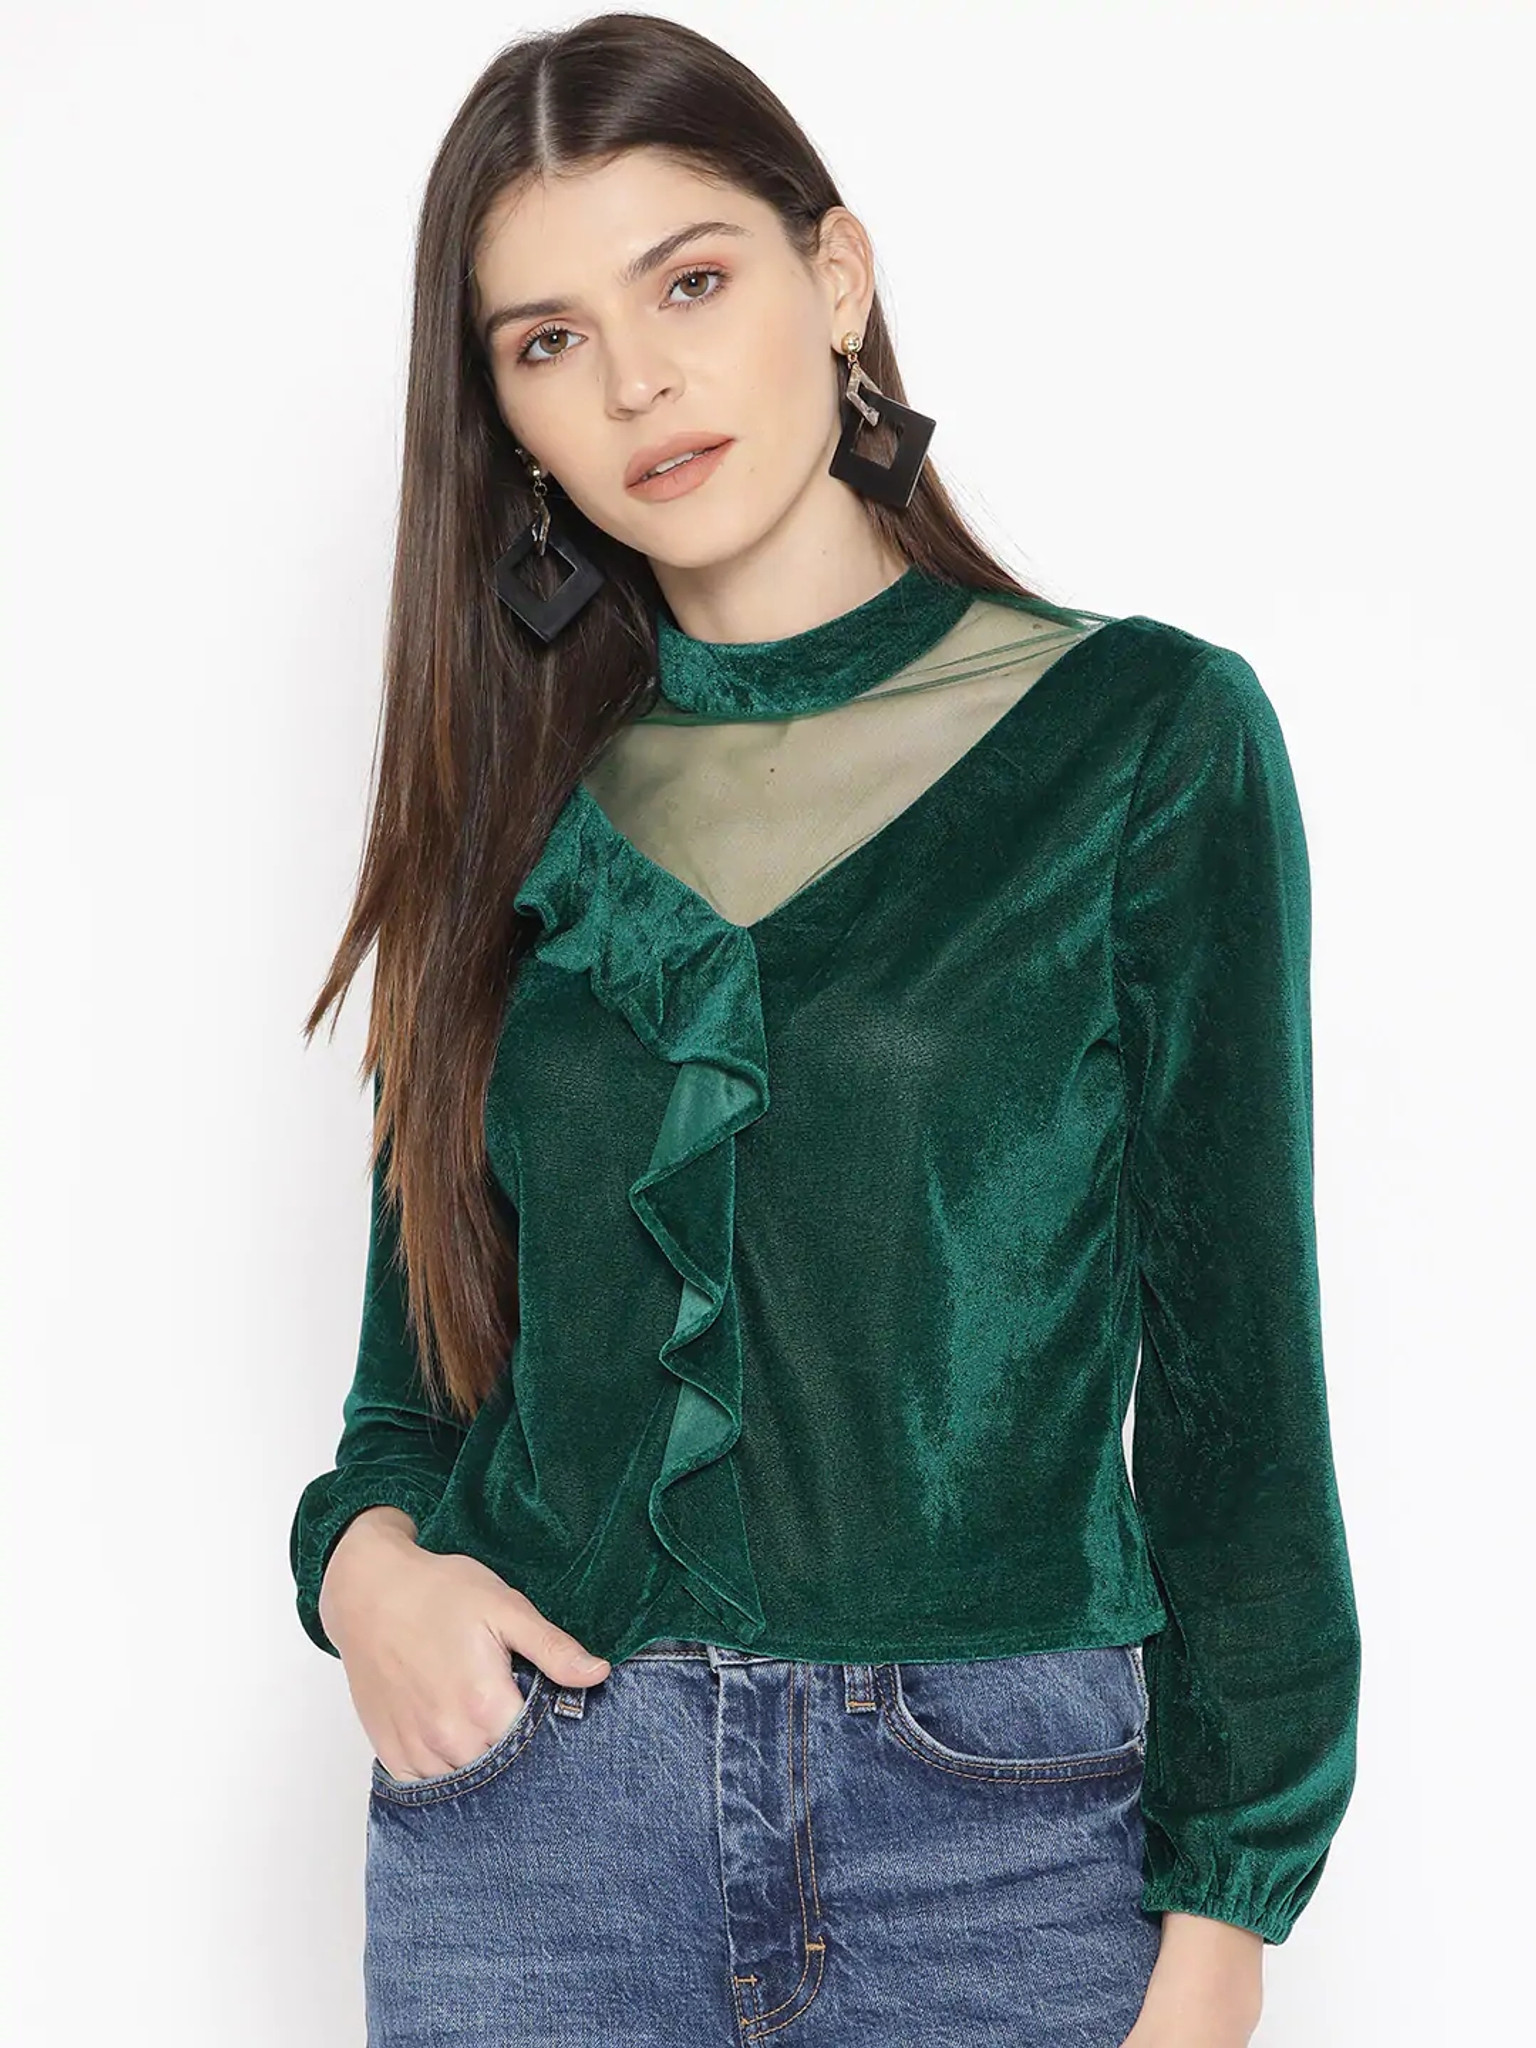 Fifth Avenue Womens Mesh Insert Detail Velvet Stitched Western Top - FAWWT24 - Green